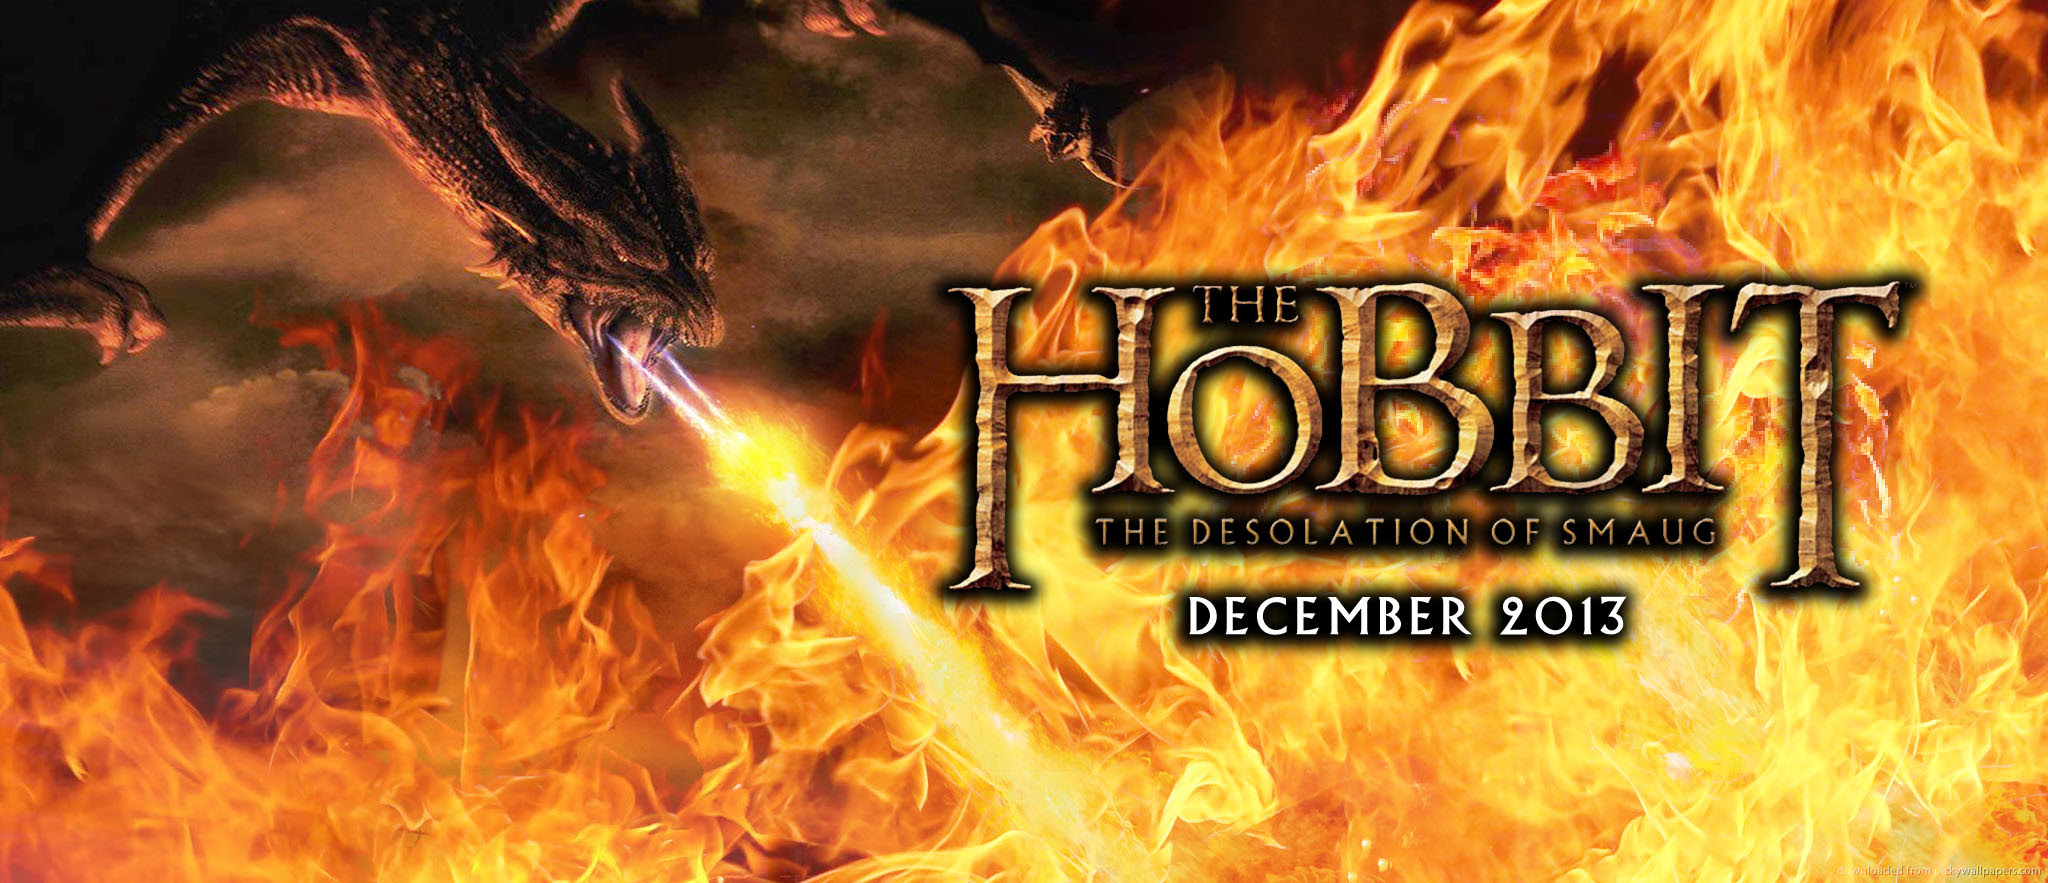 http://mutantville.com/blog/wp-content/uploads/2013/10/the-hobbit-the-desolation-of-smaug-627870l.jpg